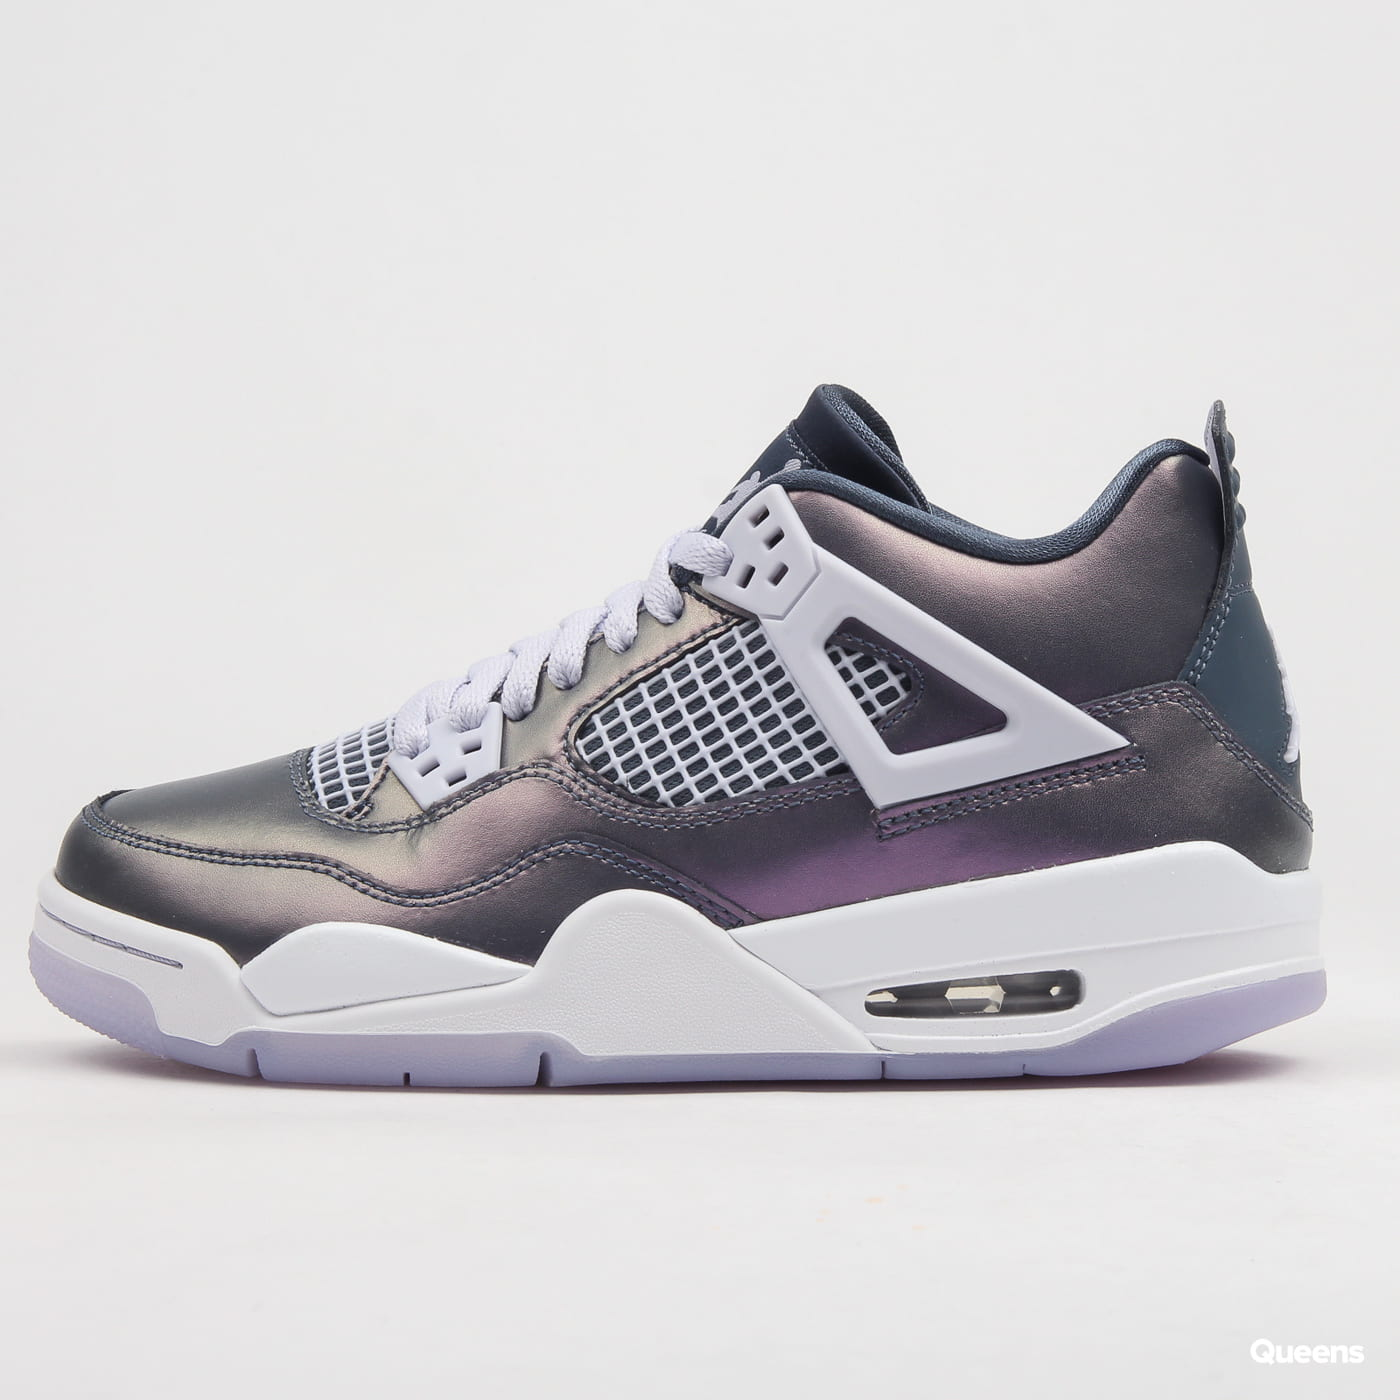 timeless design 7ebc8 be58e Zoom in Zoom in Zoom in Zoom in Zoom in. Jordan Air Jordan 4 Retro SE (GS) monsoon  blue ...